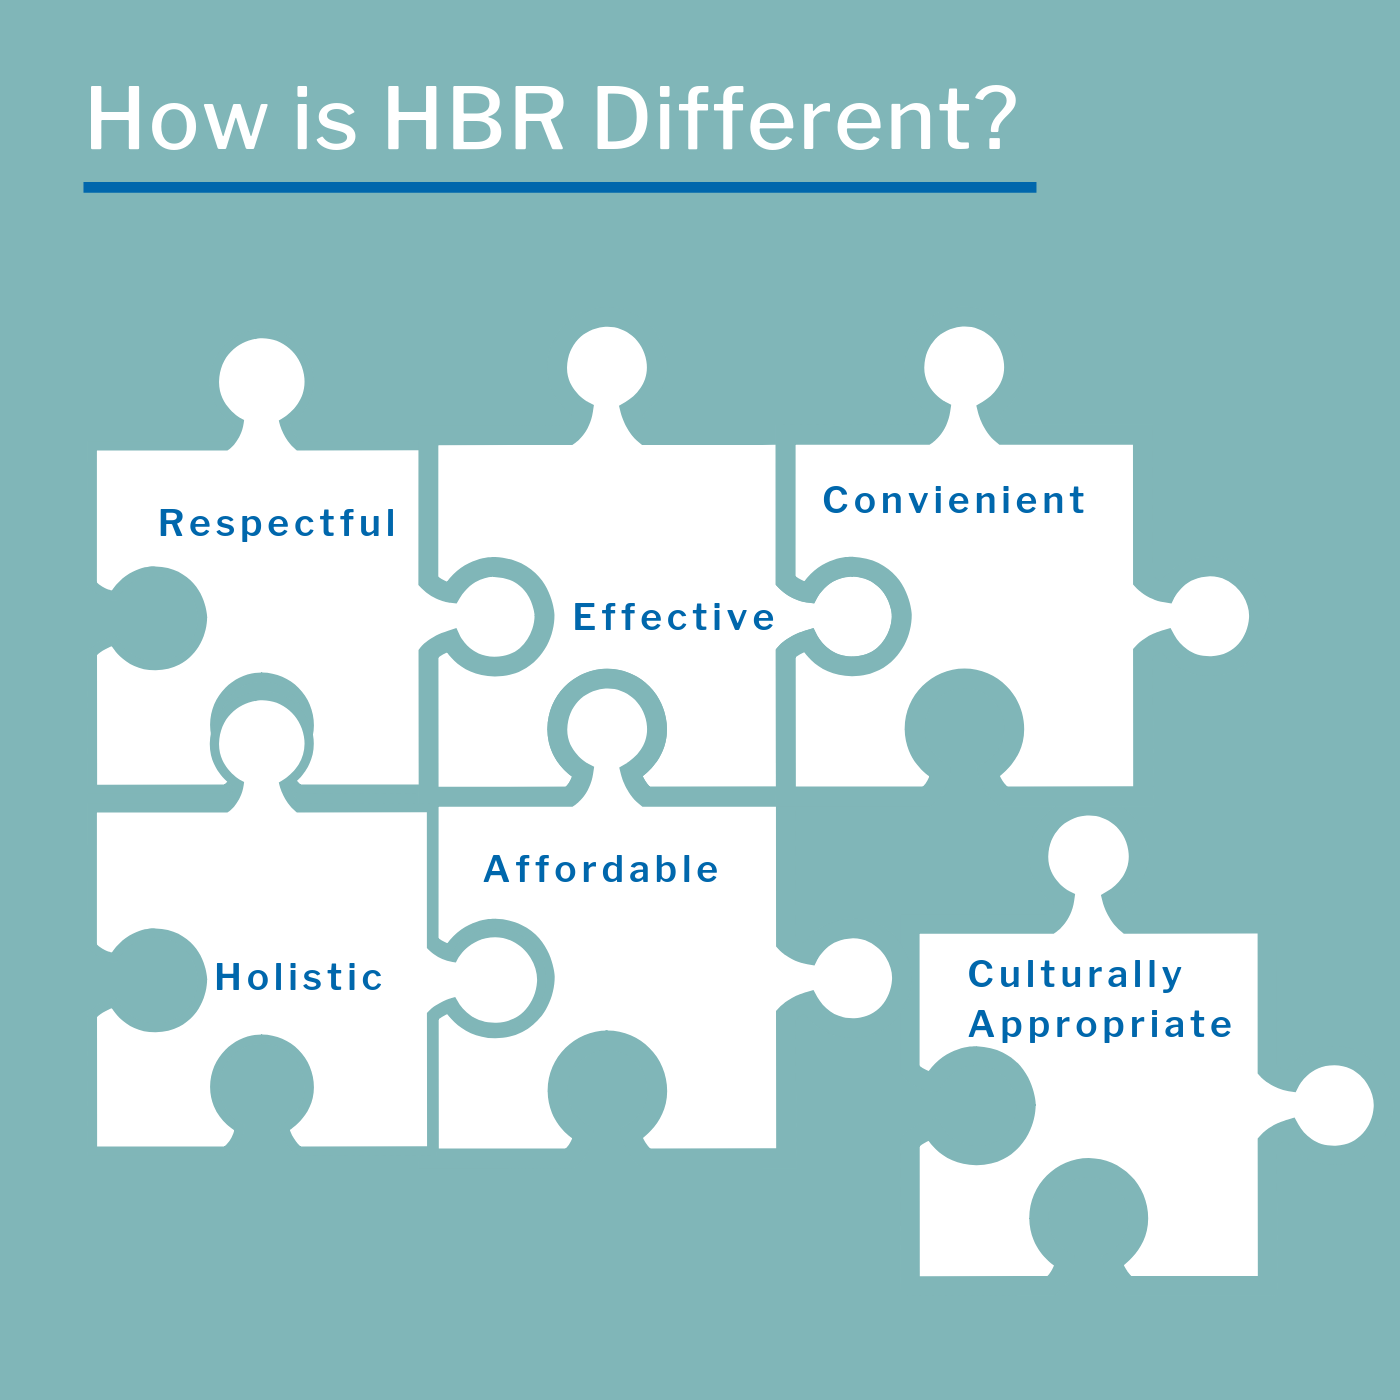 How is HBR Different? Puzzle pieces with key words in it. Respectful, effective, convenient, holistic, affordable, and culturally appropriate